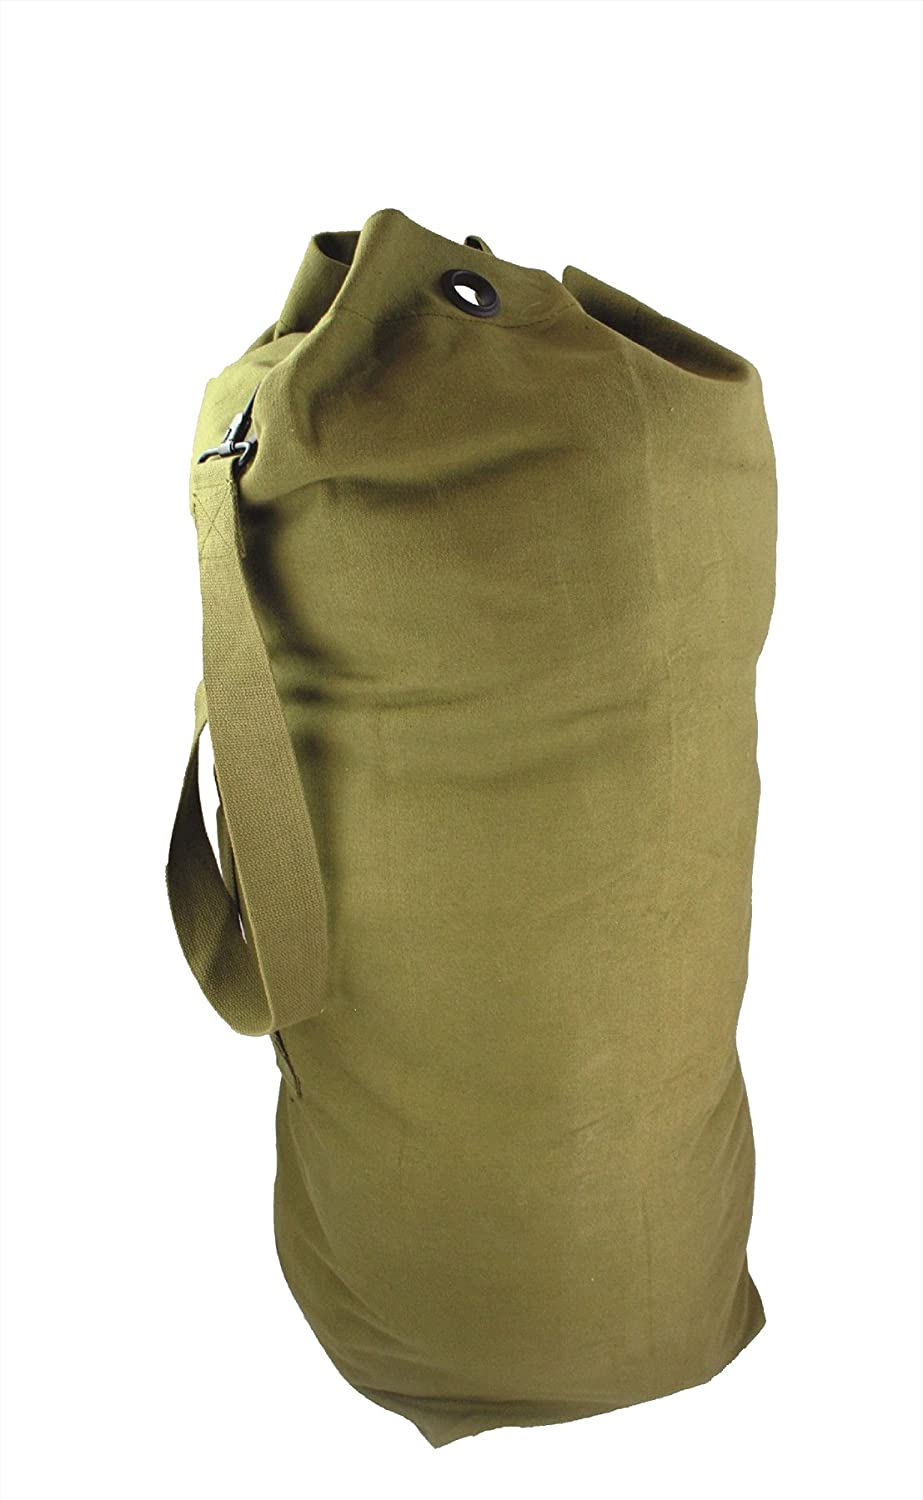 Extra Large Olive Green Canvas Army / Navy Kit Bag Holdall Duffle Bag - 39